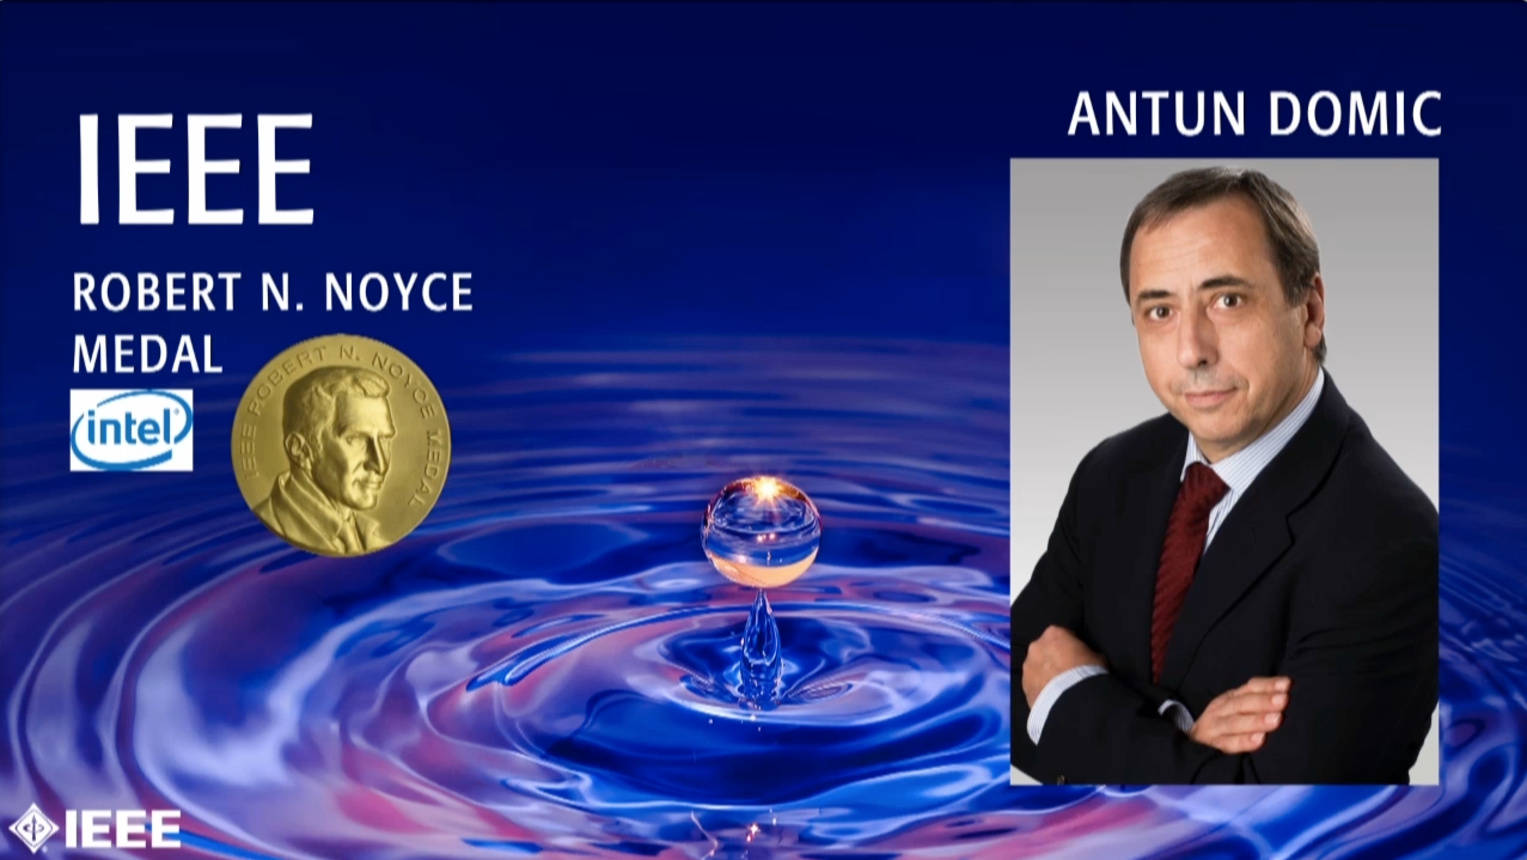 Antun Domic - IEEE Robert N. Noyce Medal, 2019 IEEE Honors Ceremony